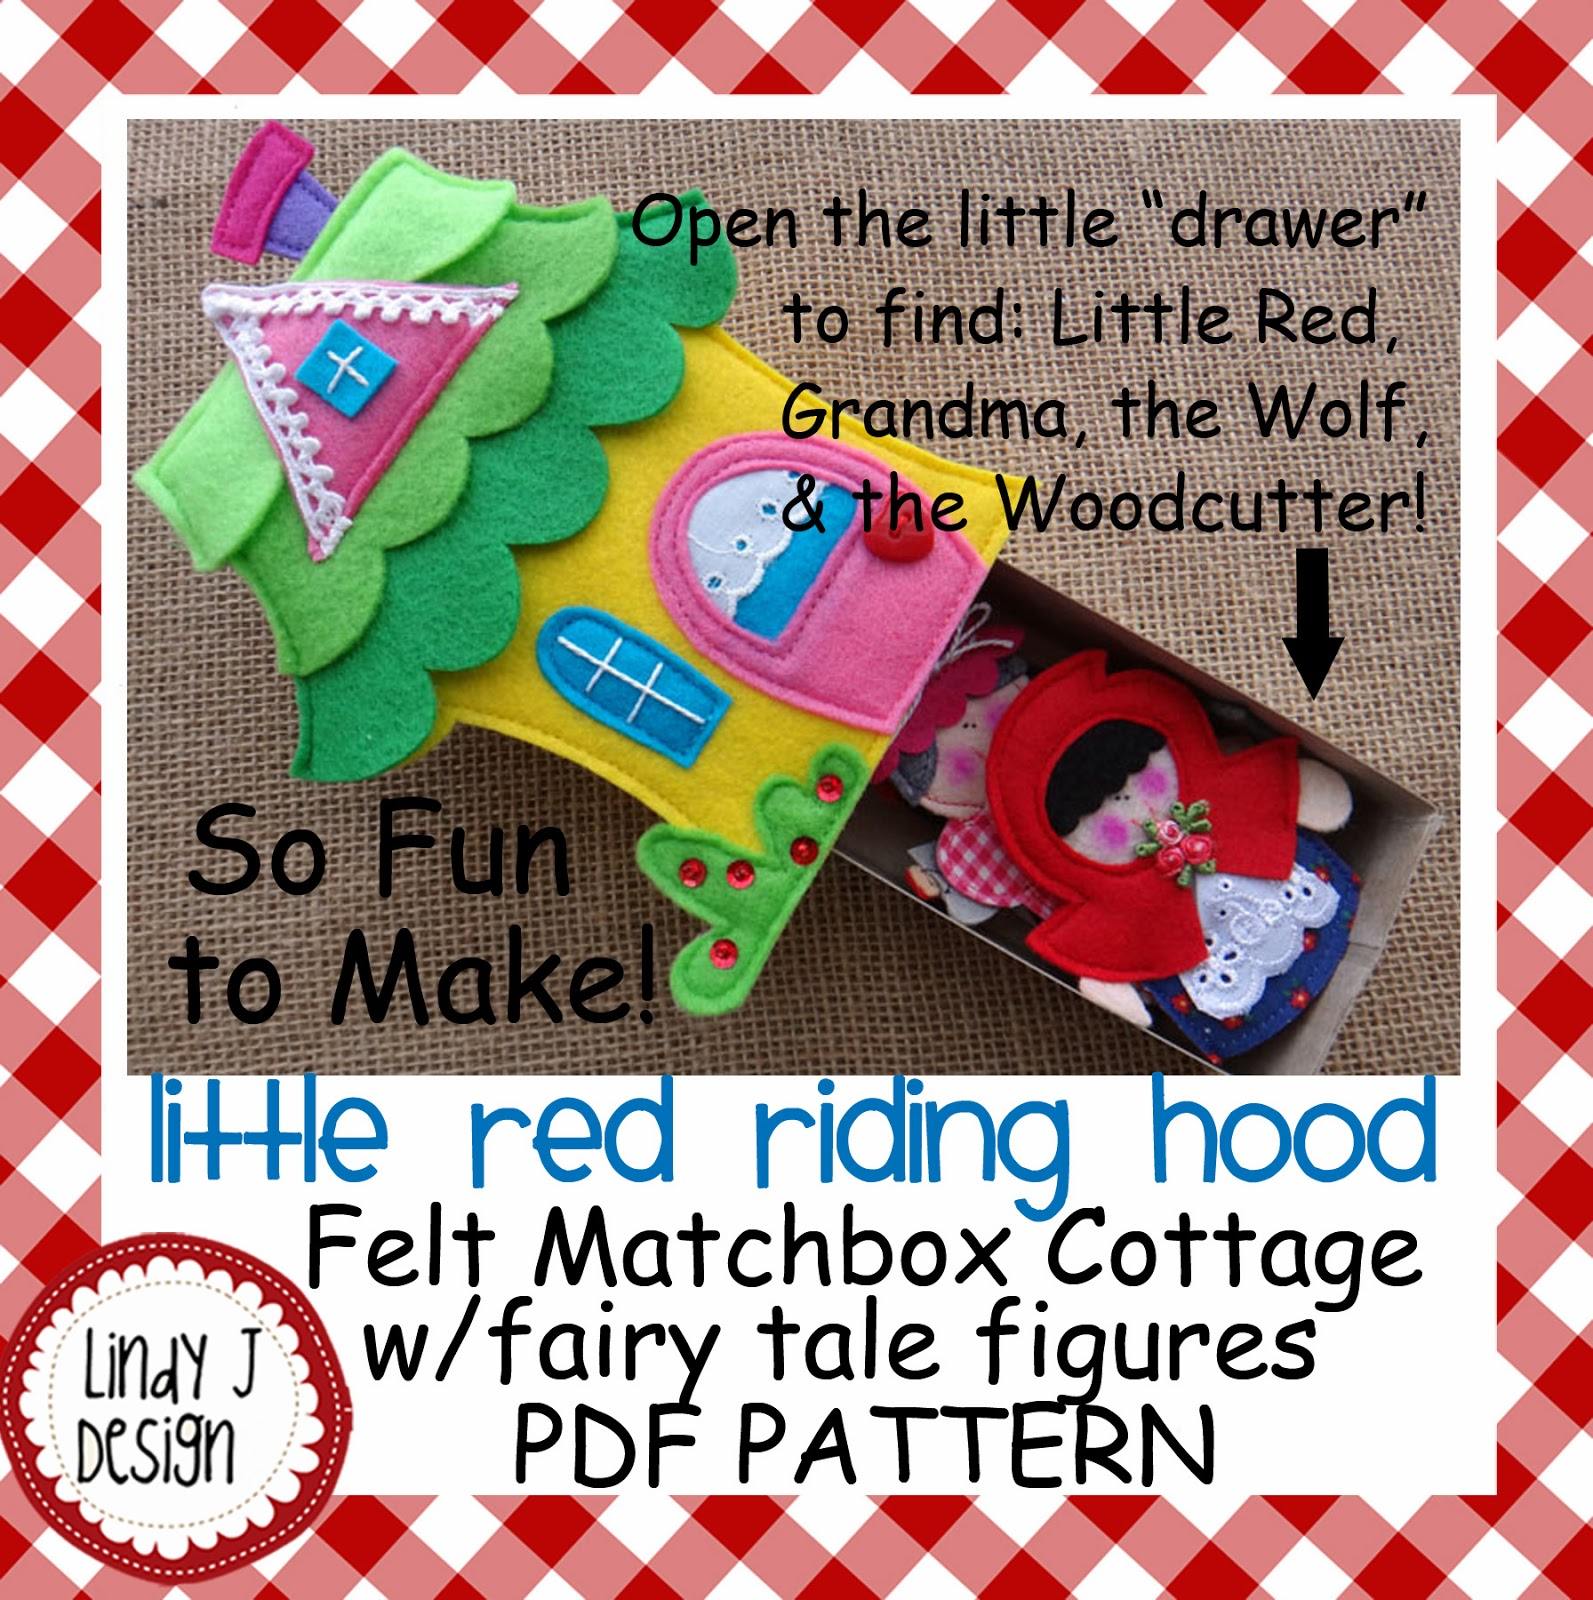 Find the PDF Pattern here: